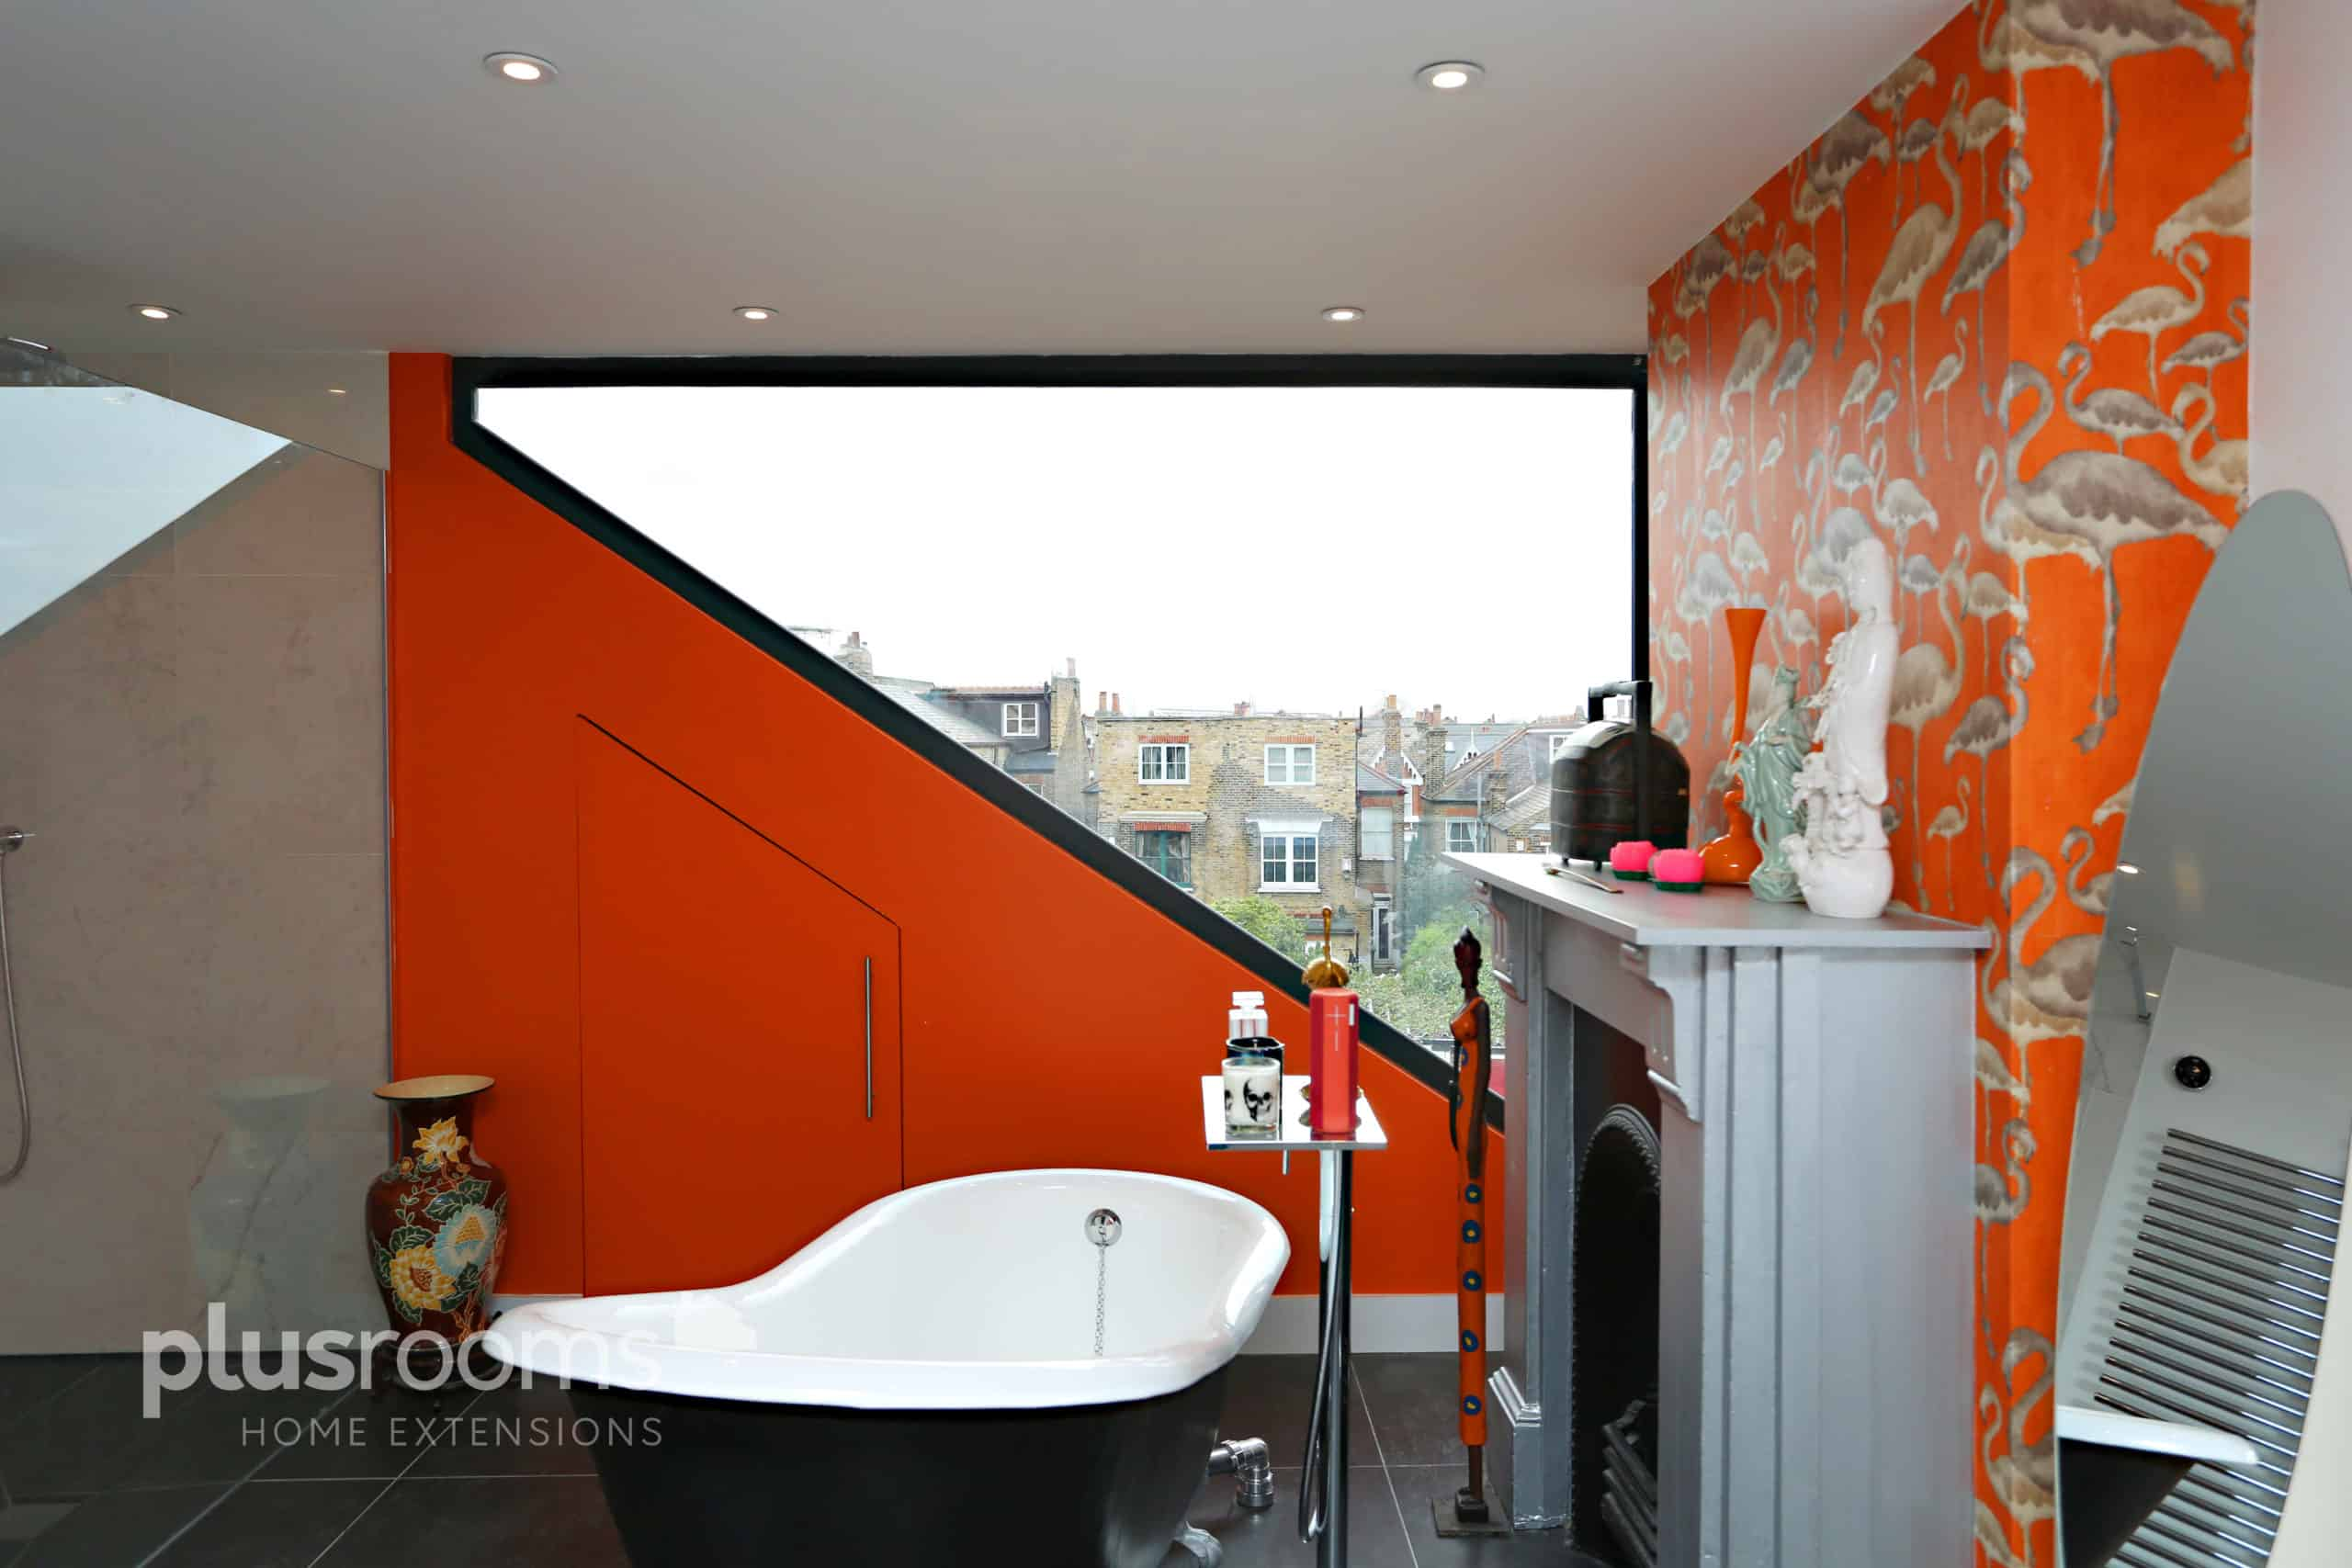 Perfect home renovation: loft conversion design ideas